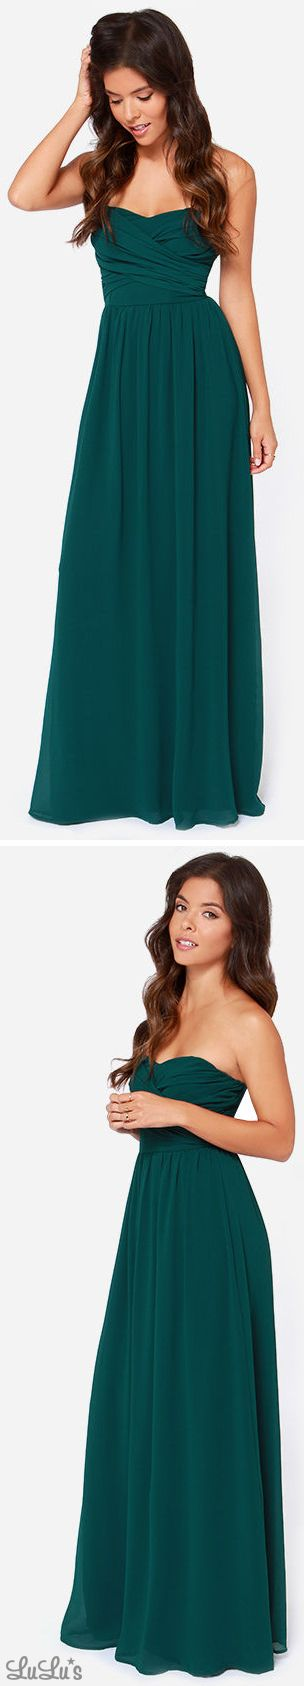 LULUS Exclusive Royal Engagement Strapless Dark Green Maxi Dress